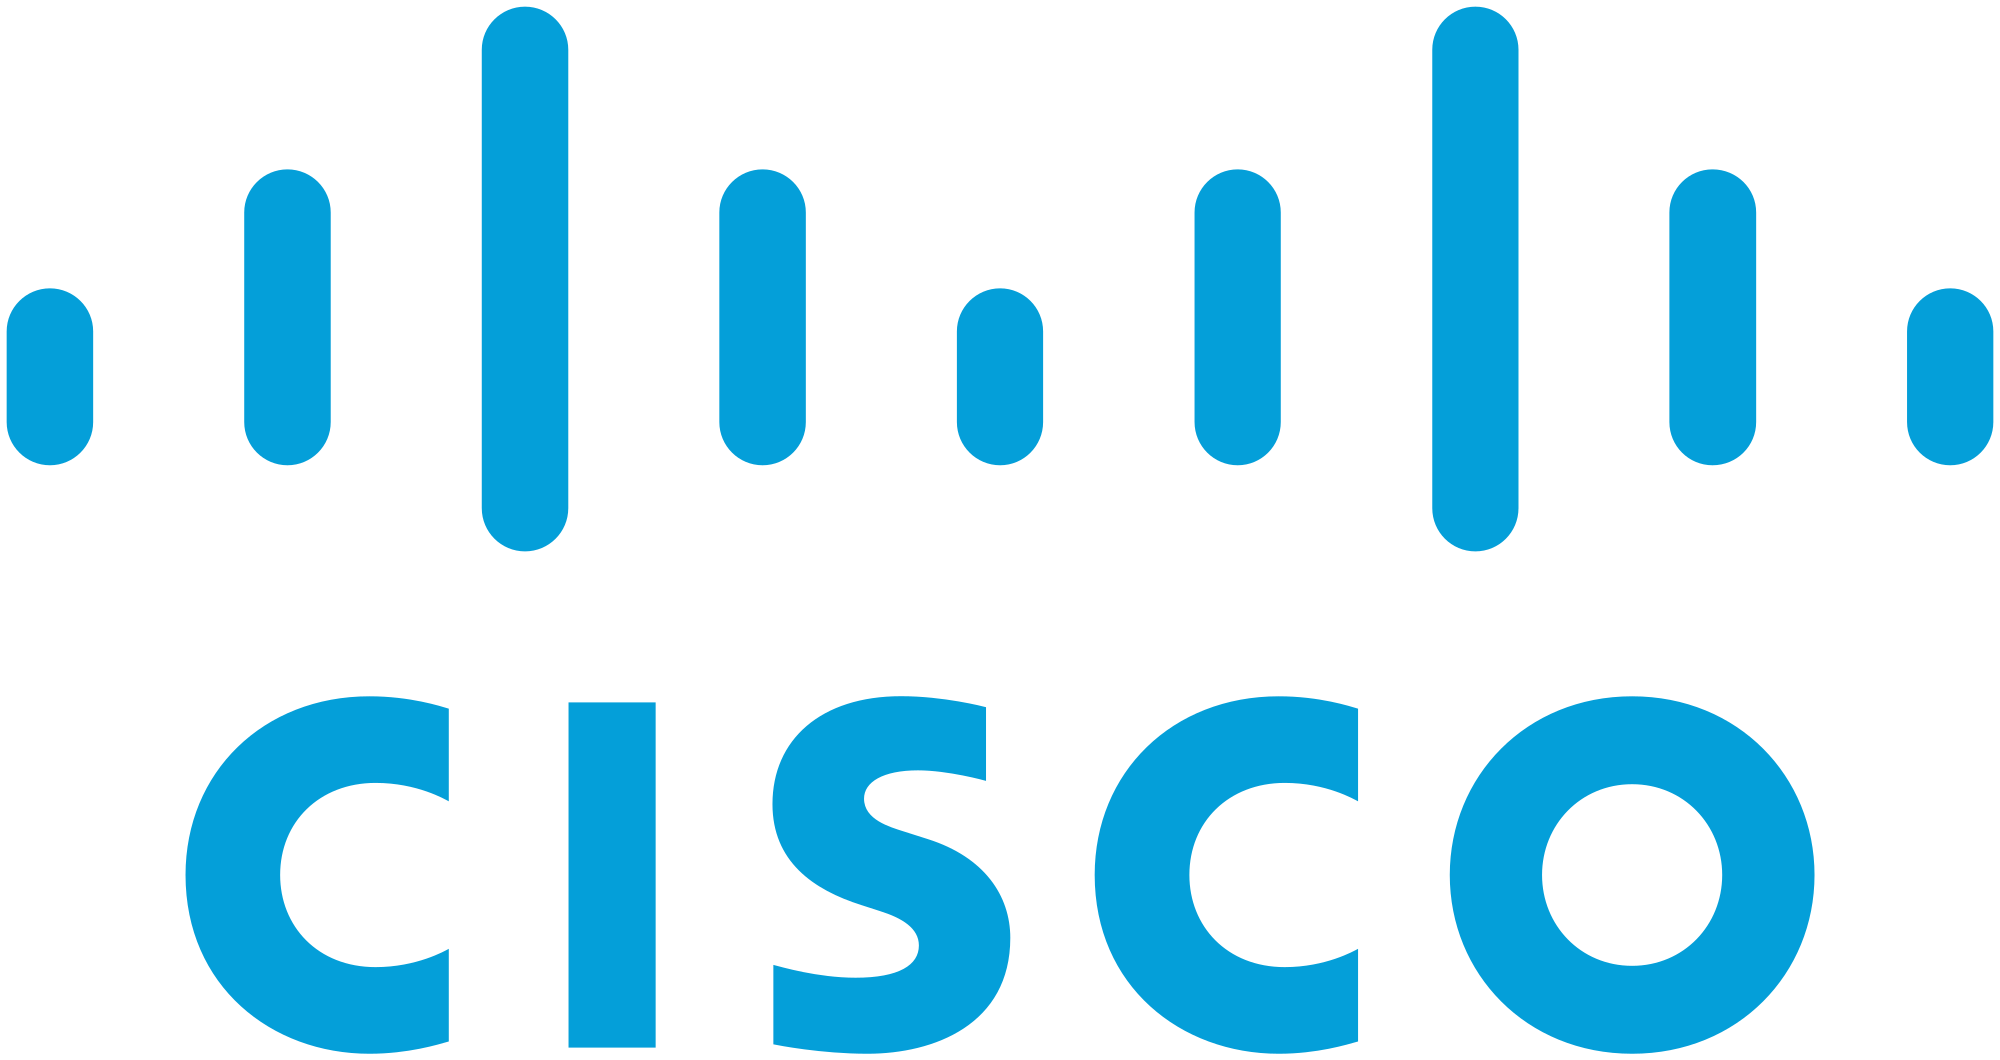 Cisco Firewall Series logo